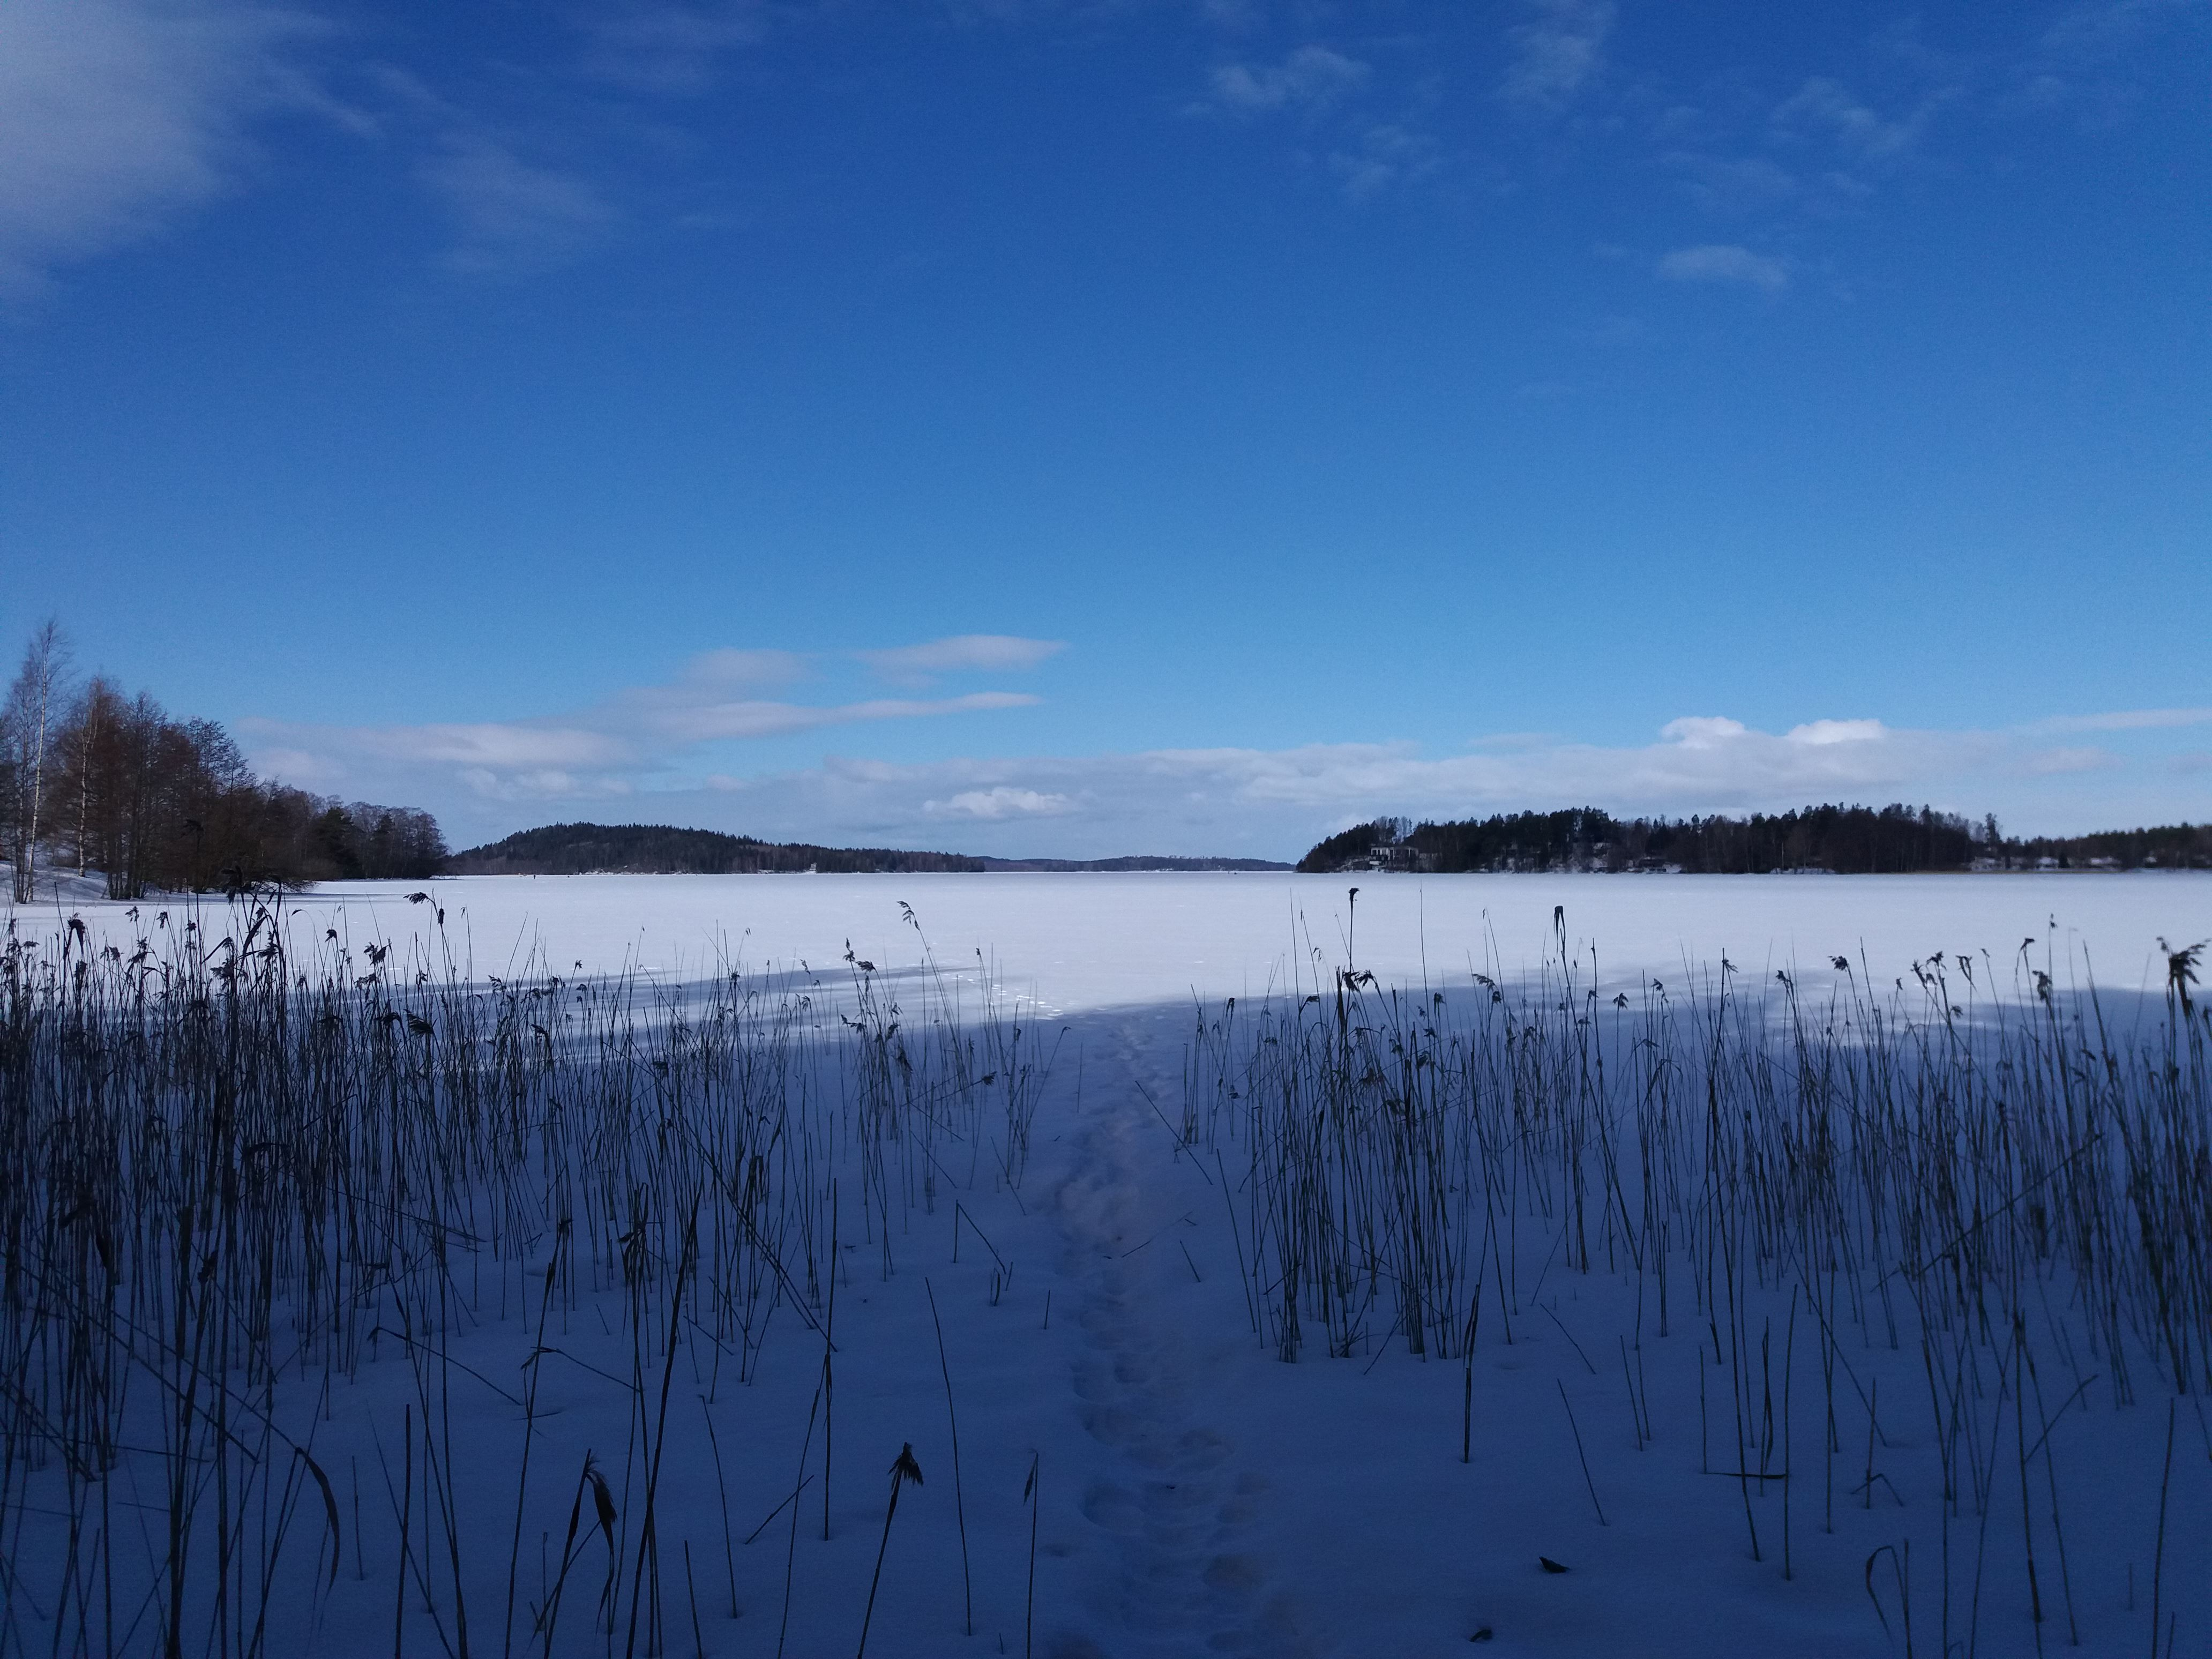 Winter Day on Island Snow Shoe or Ski Trip   Best Lake Nature Adventures